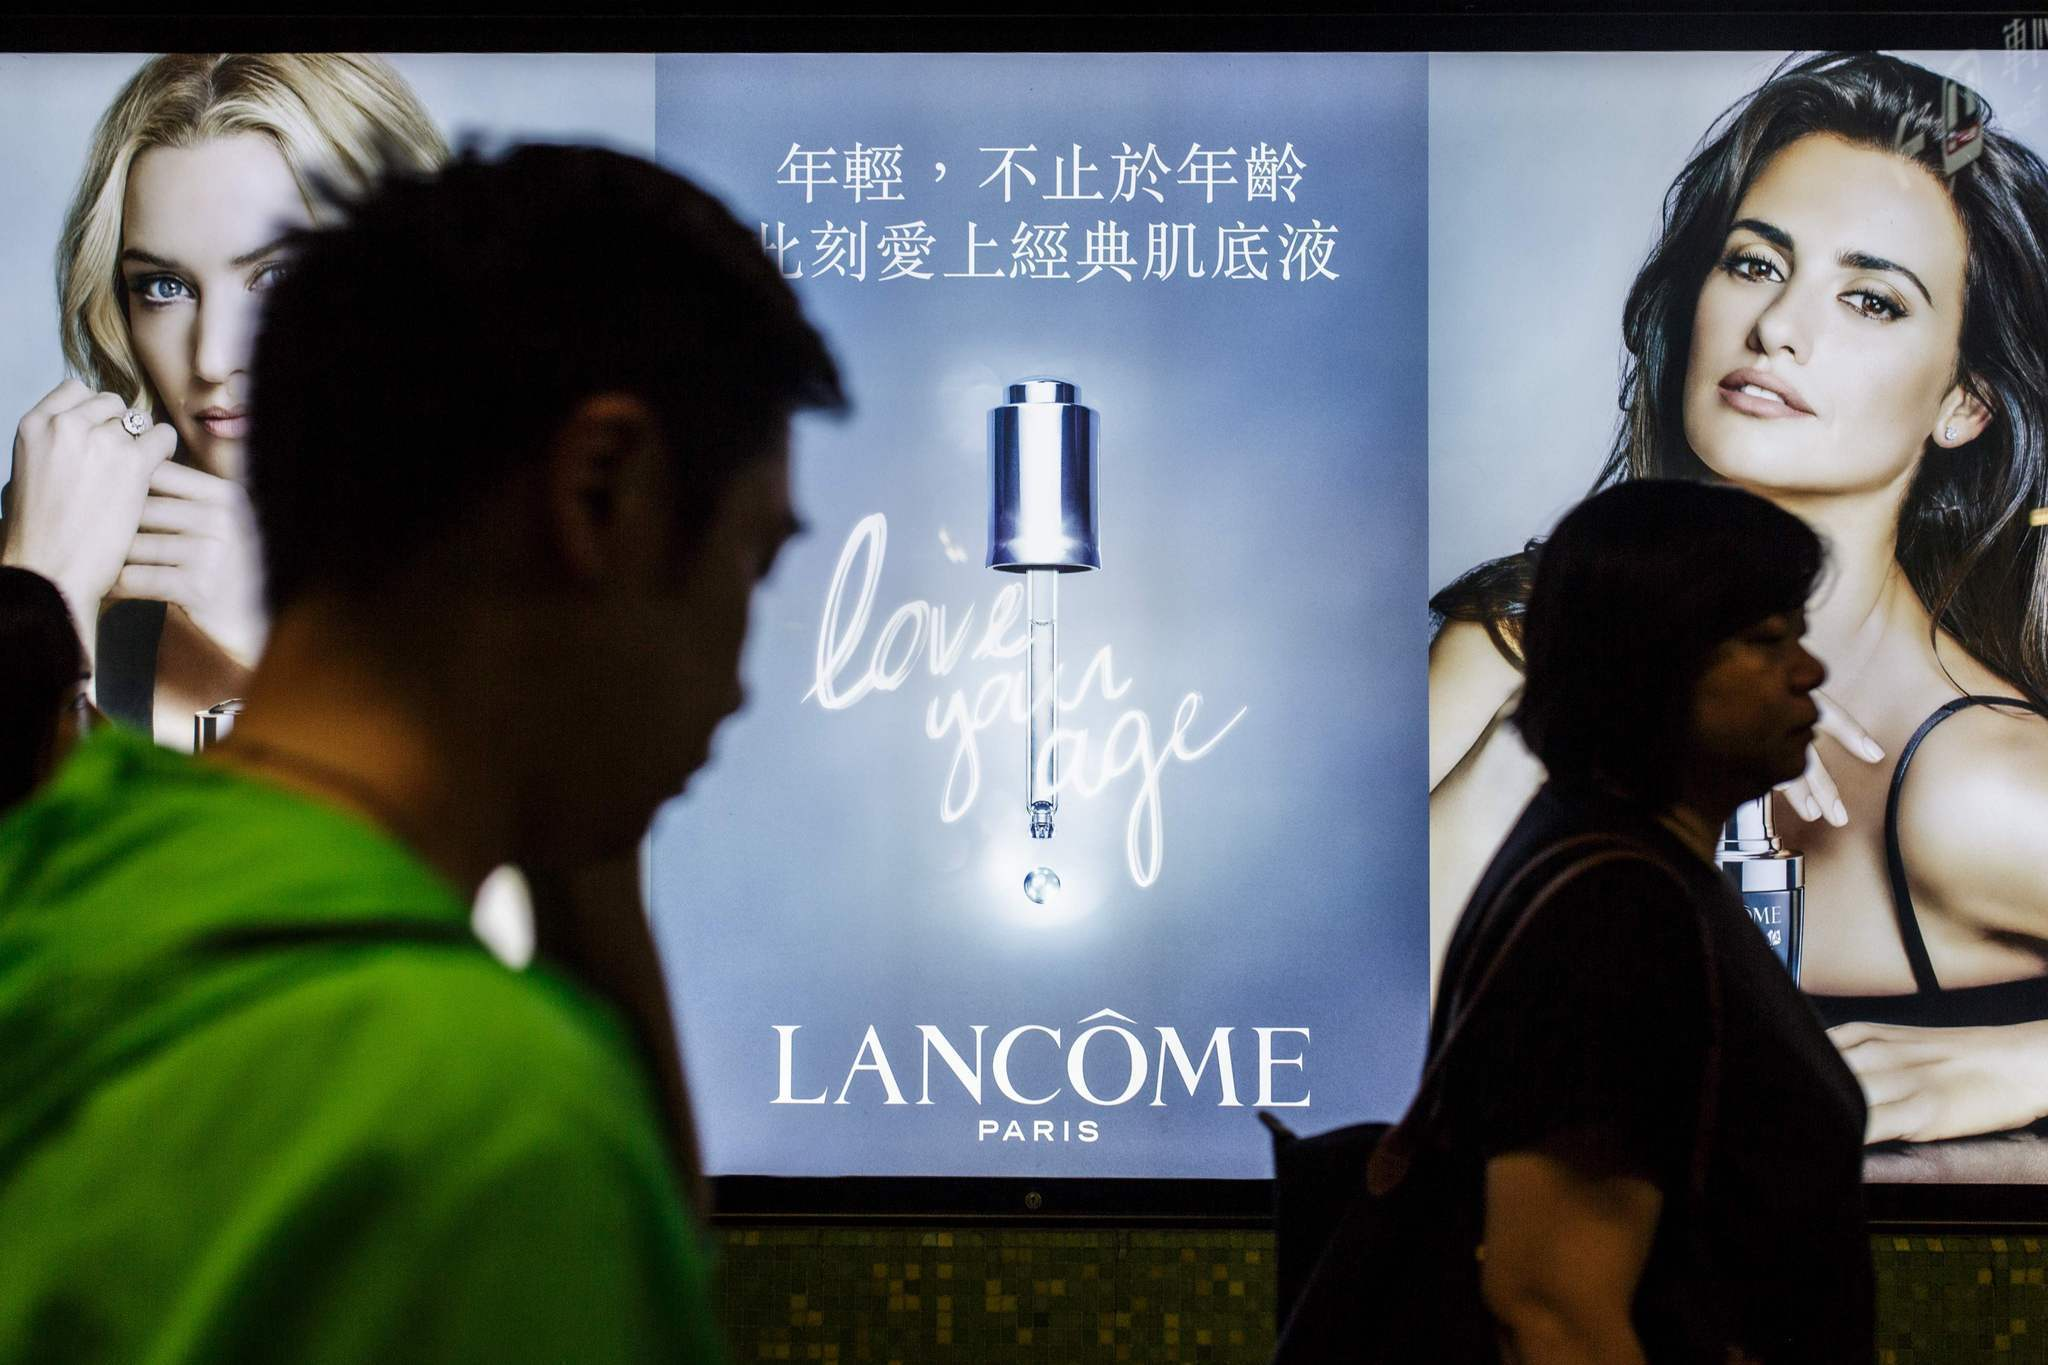 Lancome draws outrage in Hong Kong after dropping pro-democracy pop singer